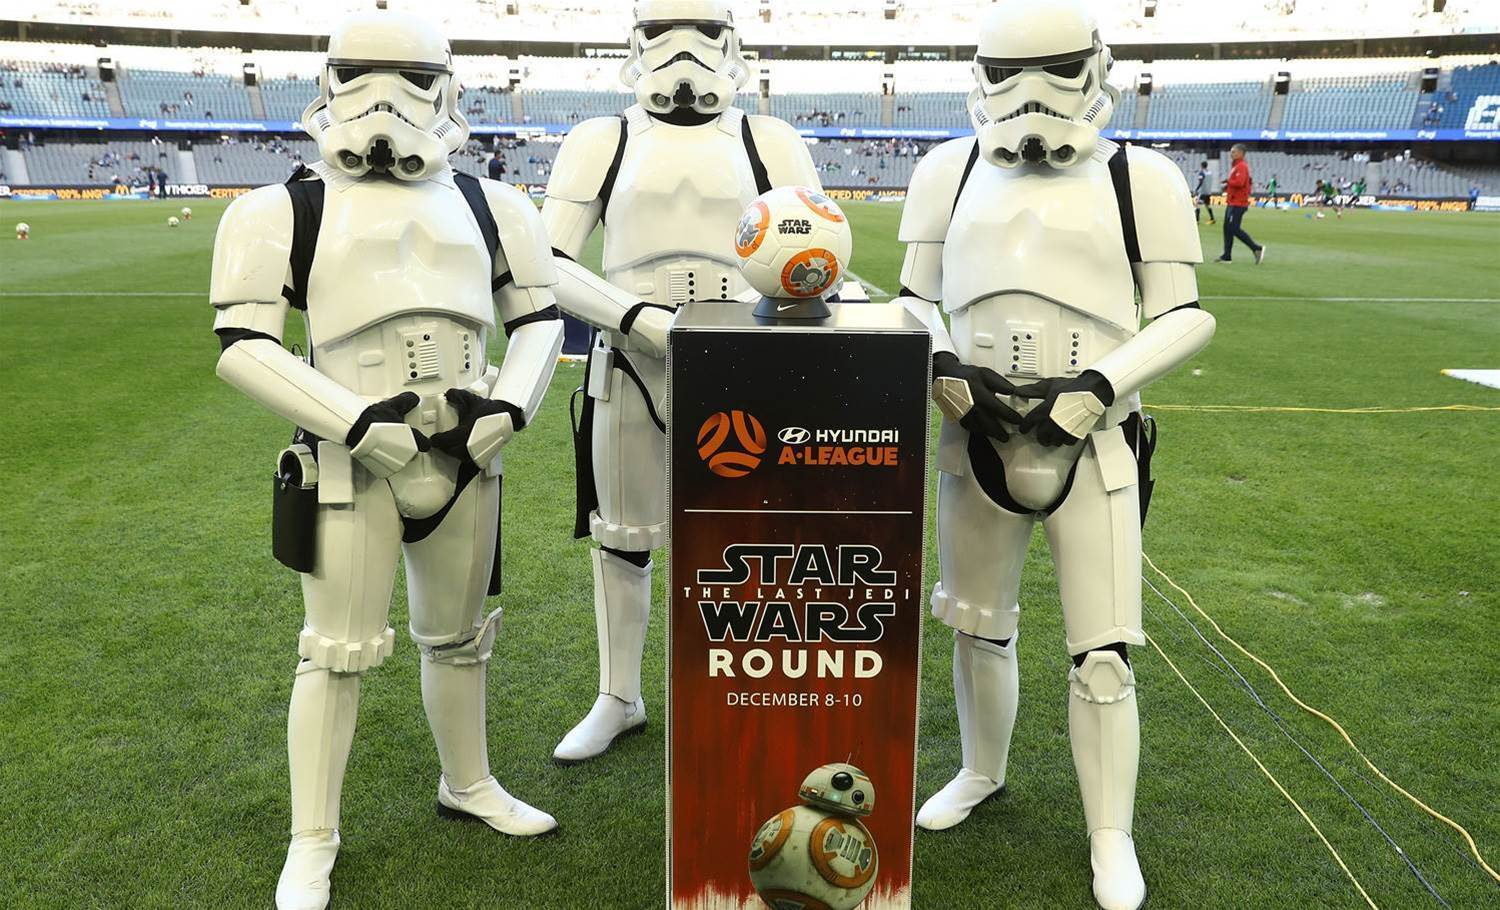 A-League pics: Star Wars Round